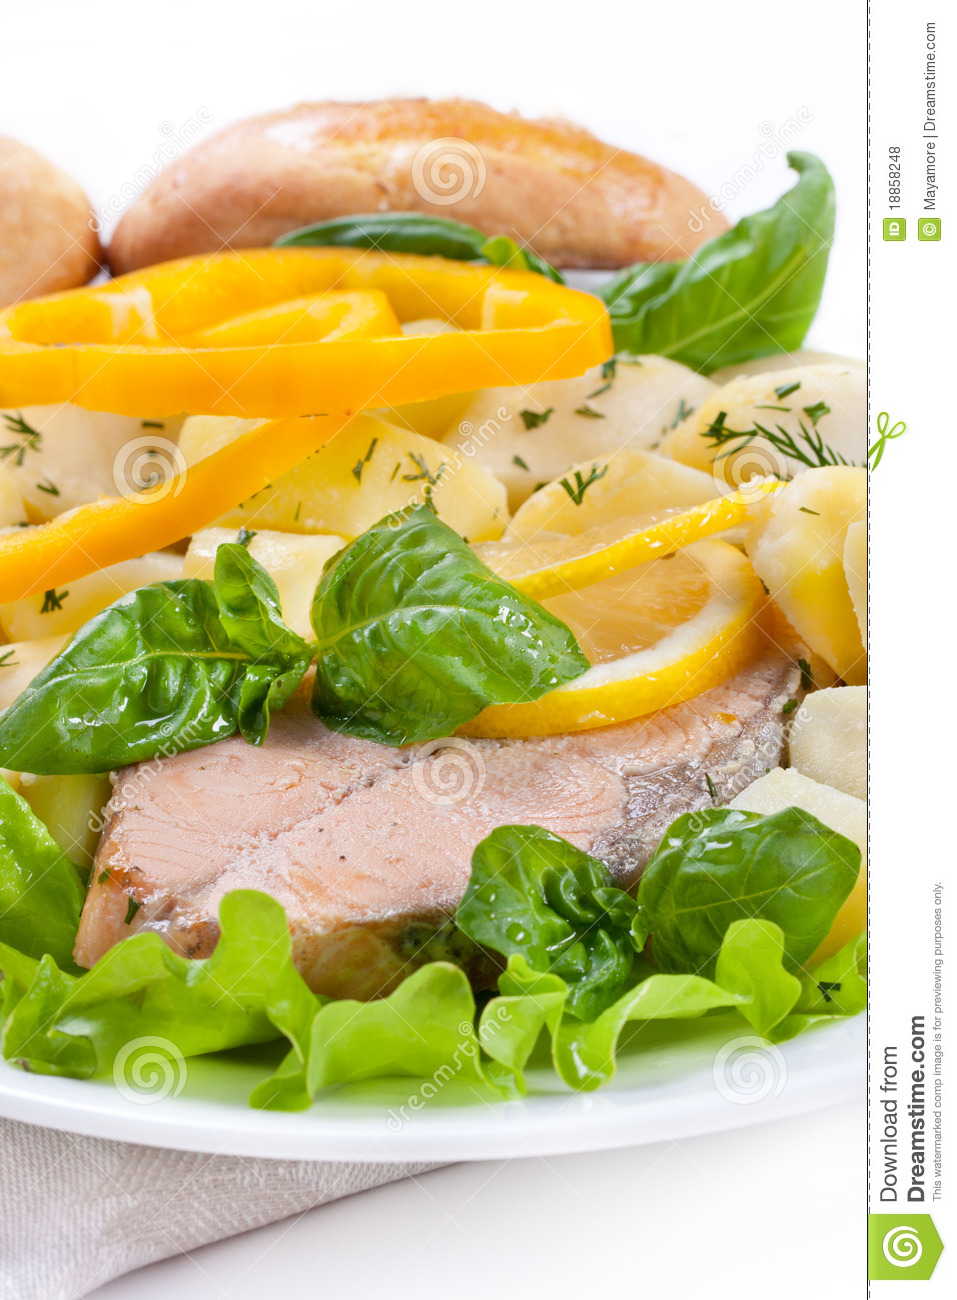 Salmon steak with potatoes and lemon.